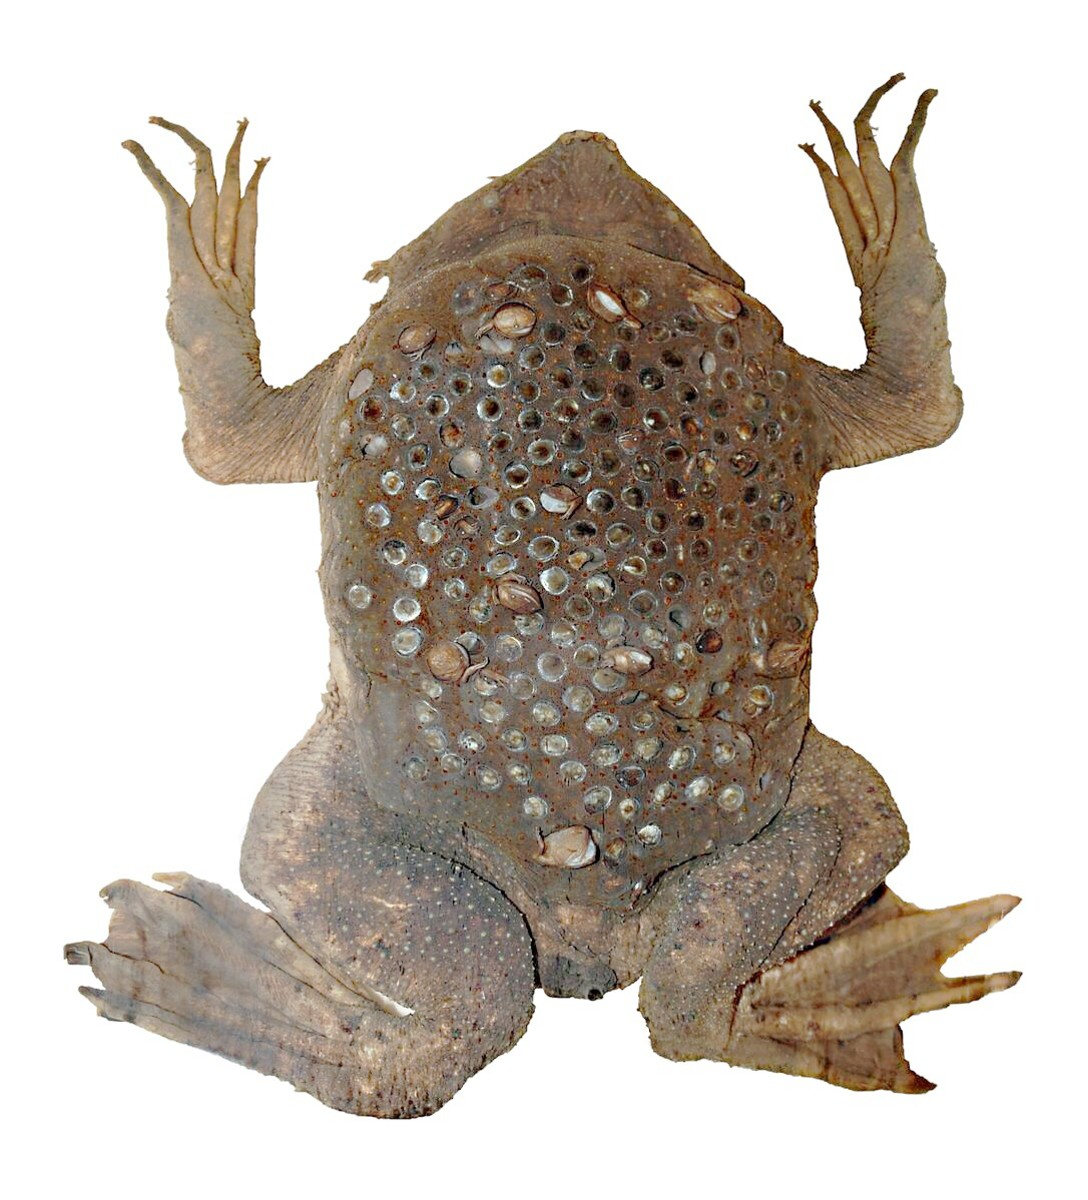 A preserved female Surinam toad, showing the chambers where the young toads developed